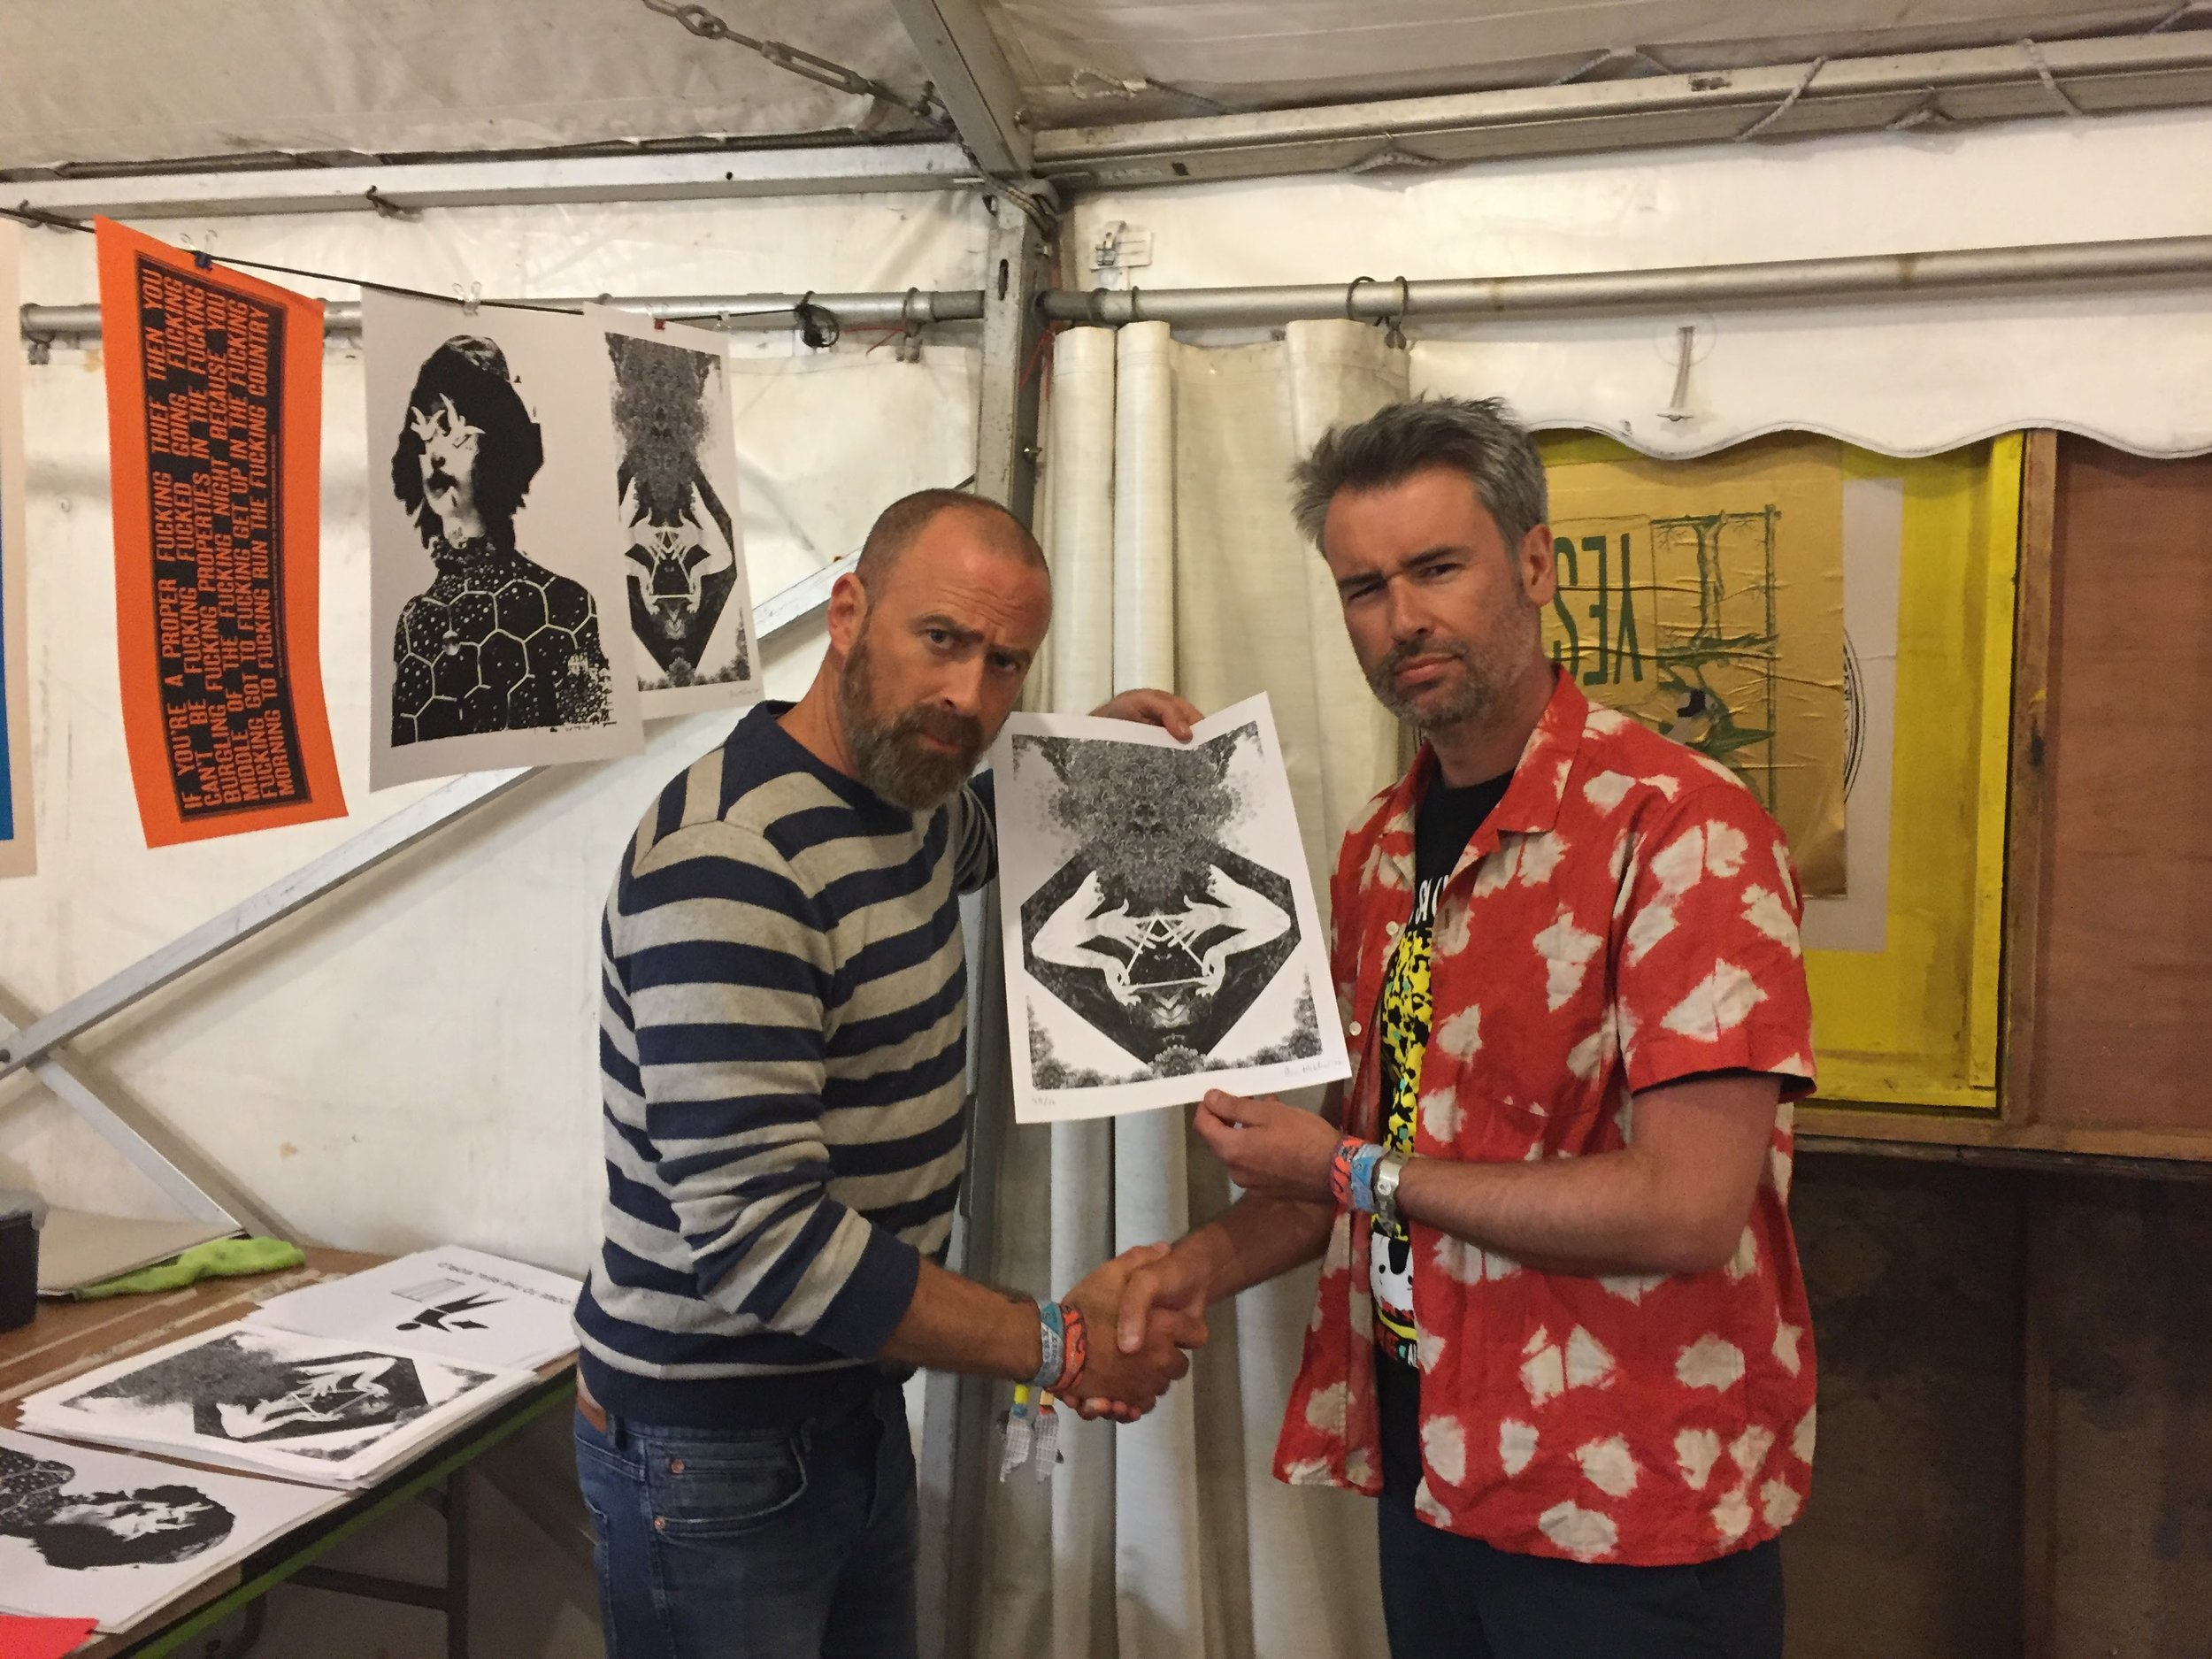 With Dan Hillier